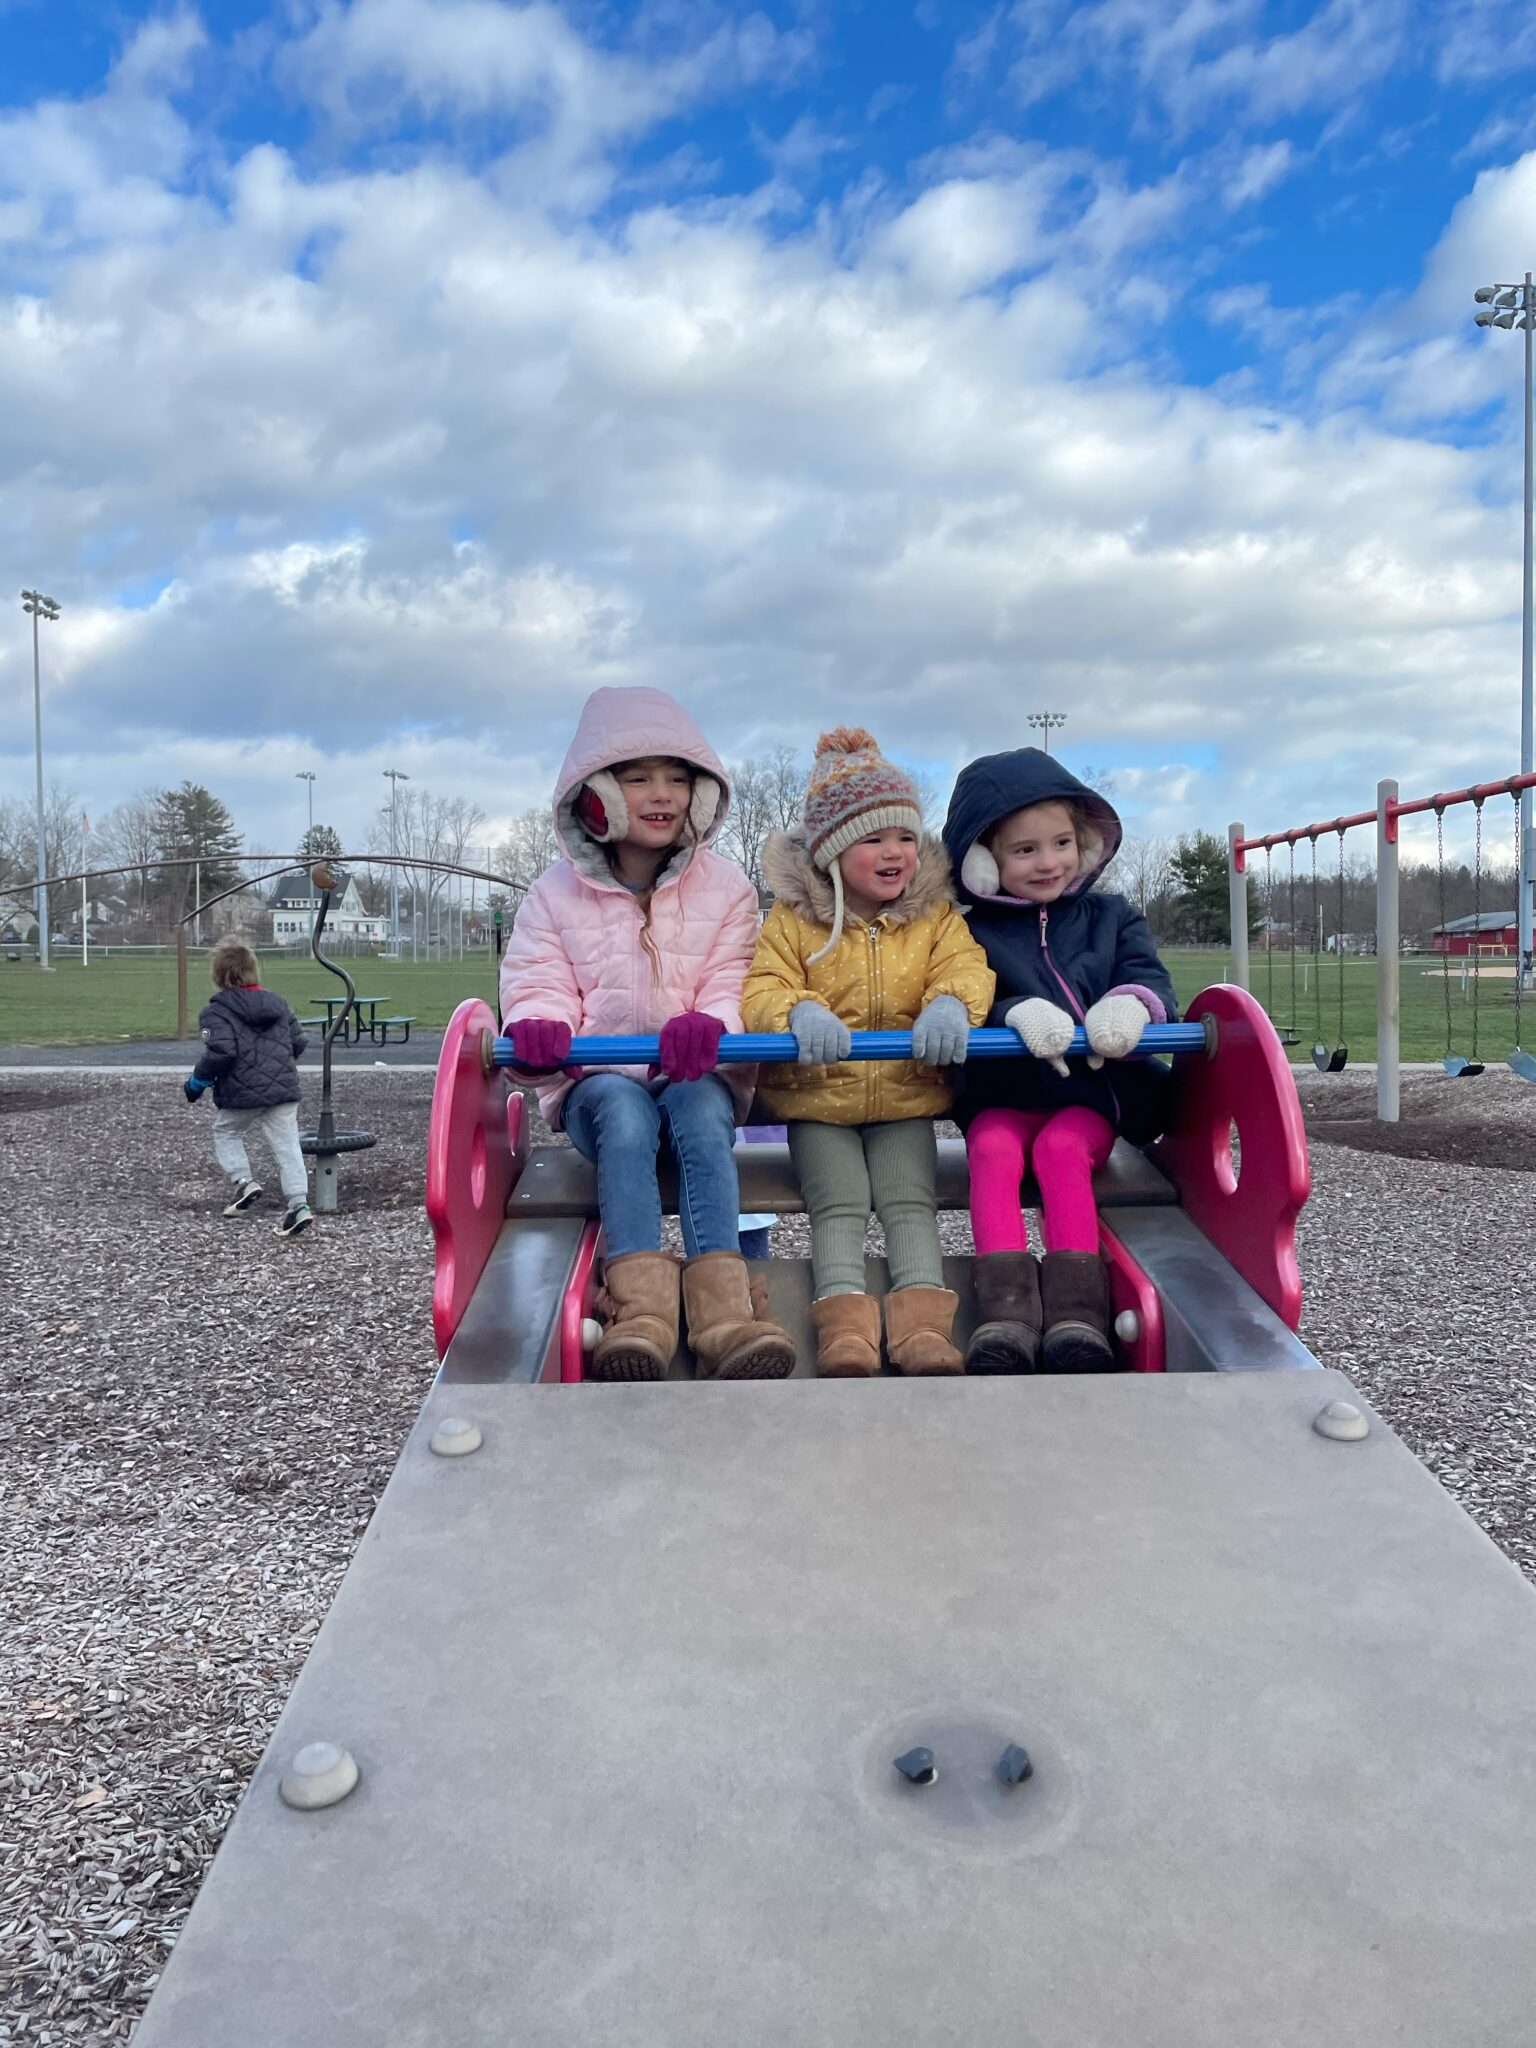 little girls on seesaw at park